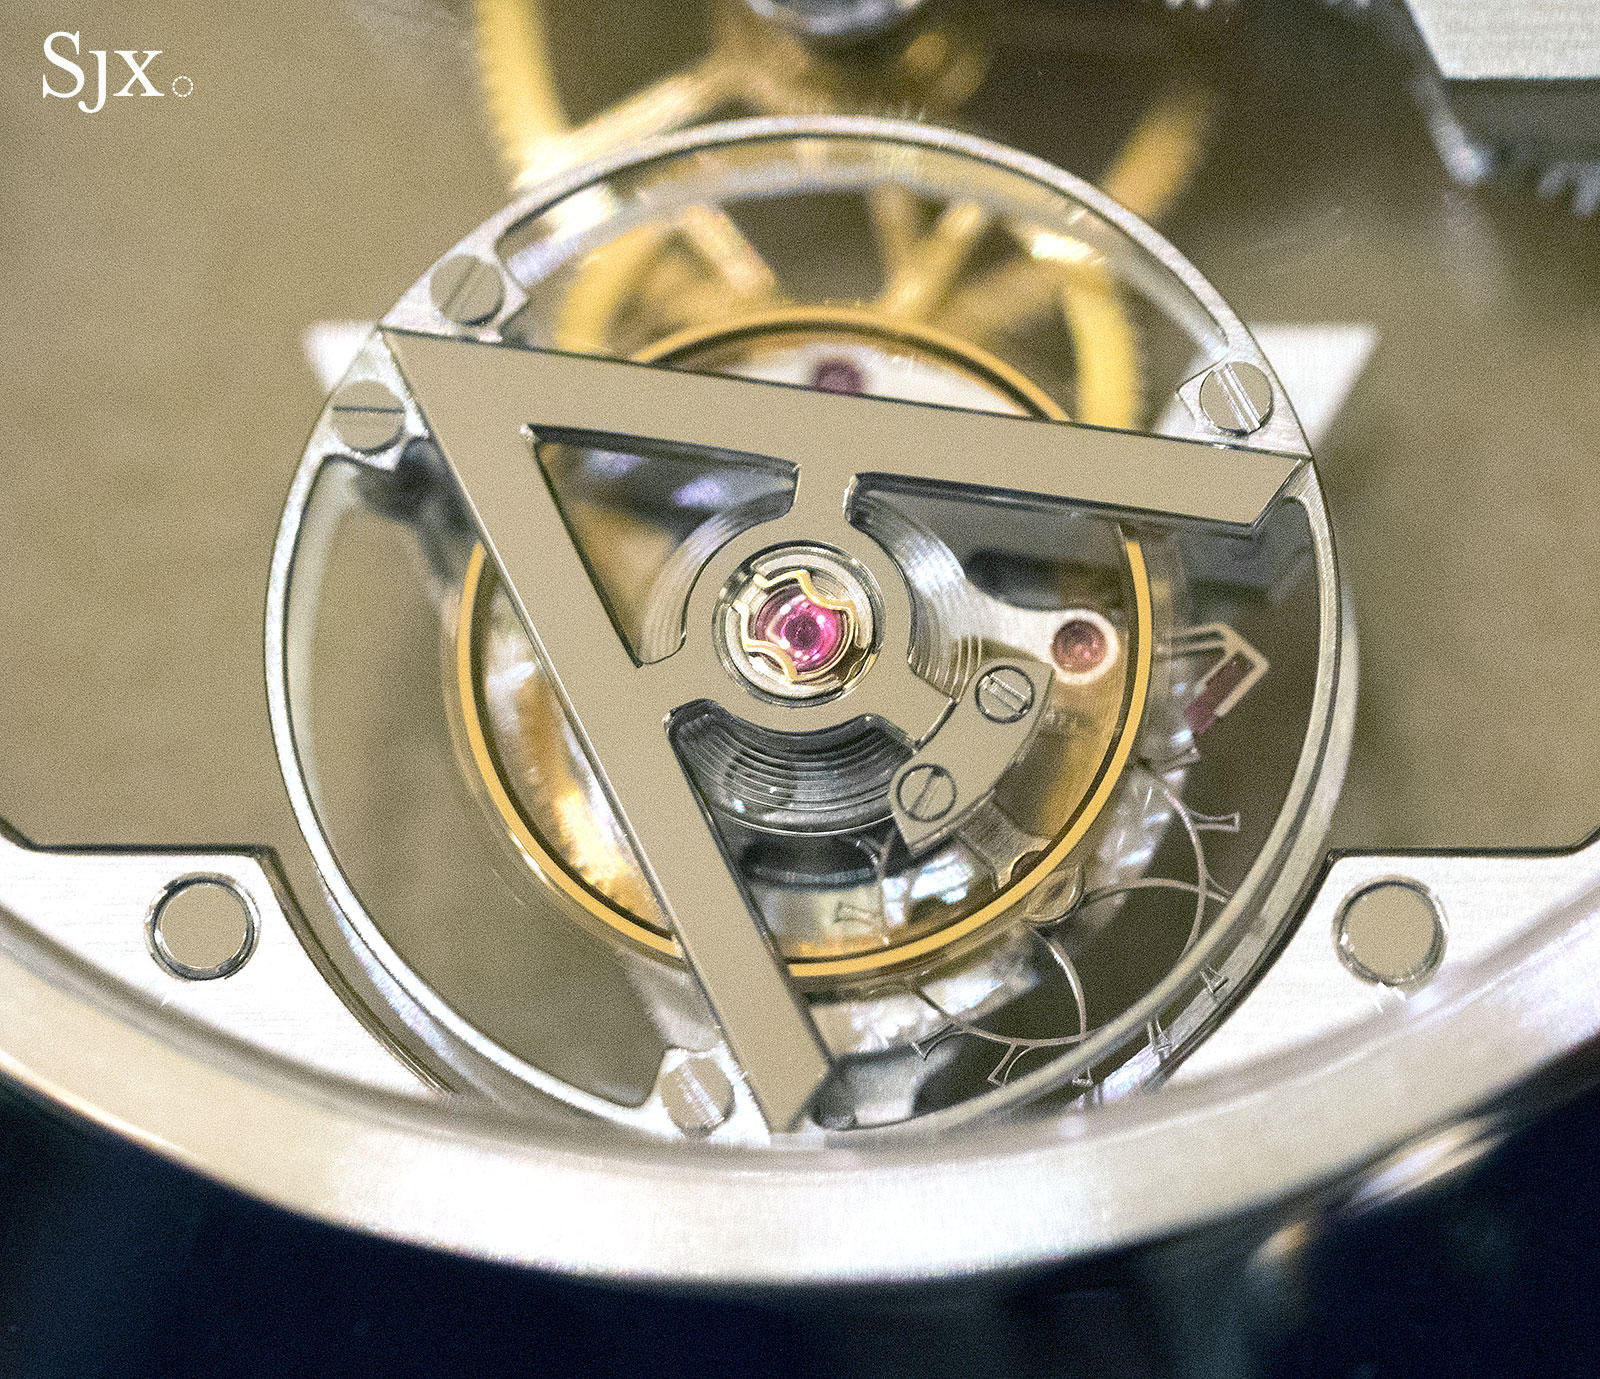 Louis Vuitton Flying Tourbillon Poinçon de Genève 2